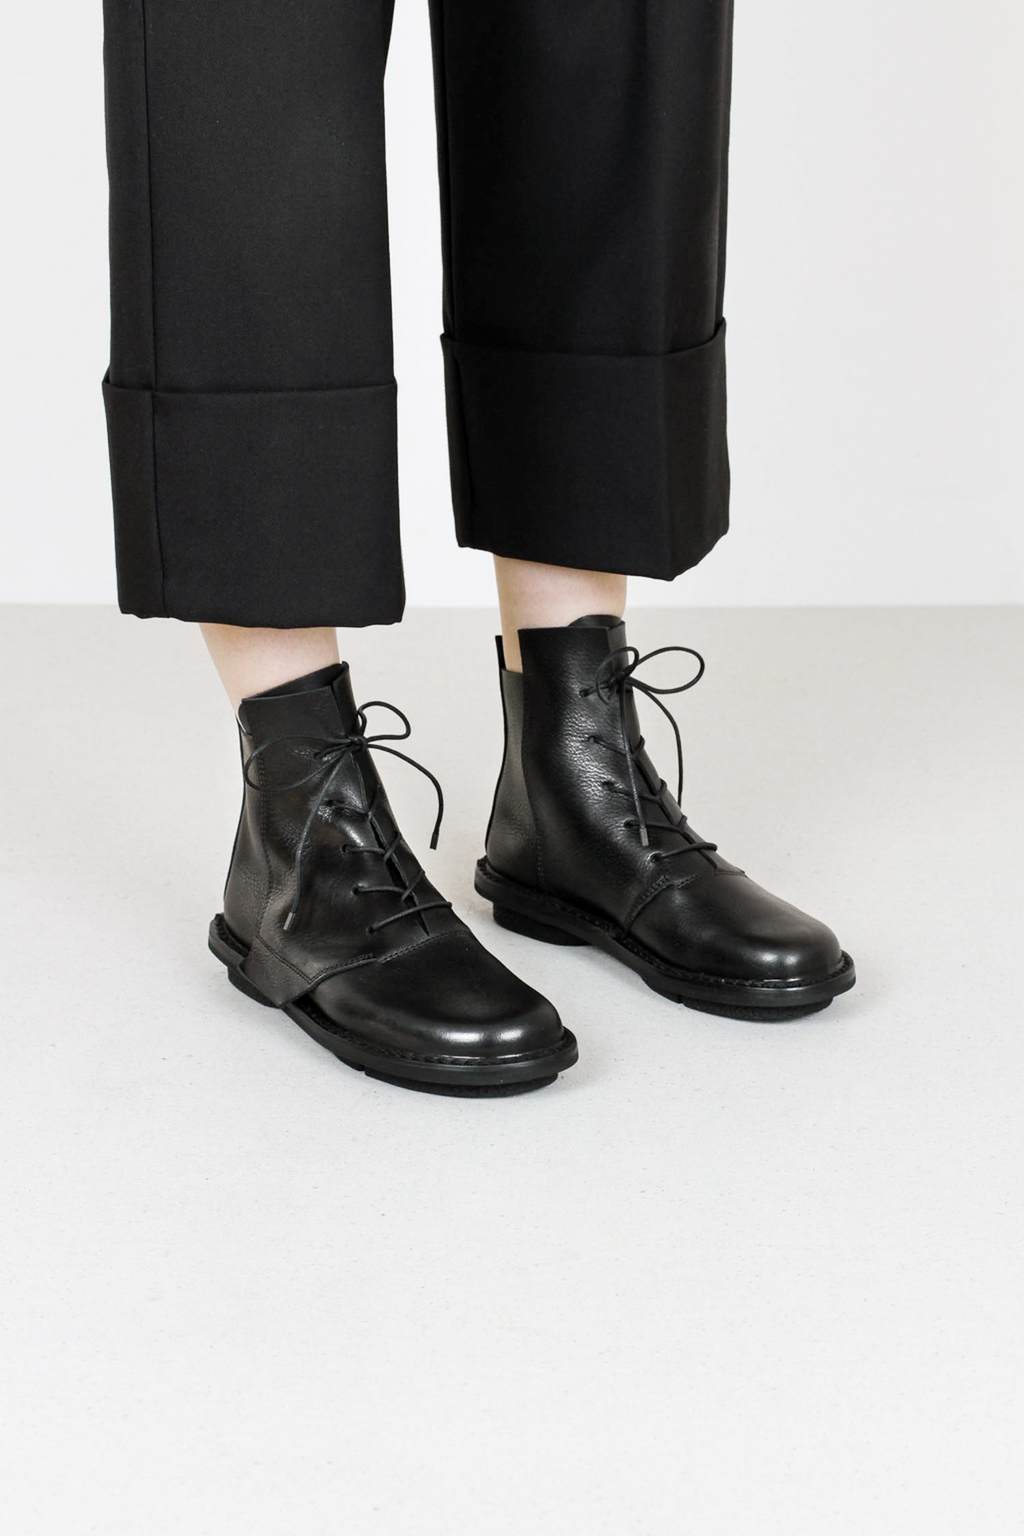 Trippen lumber f waw blkleather boots